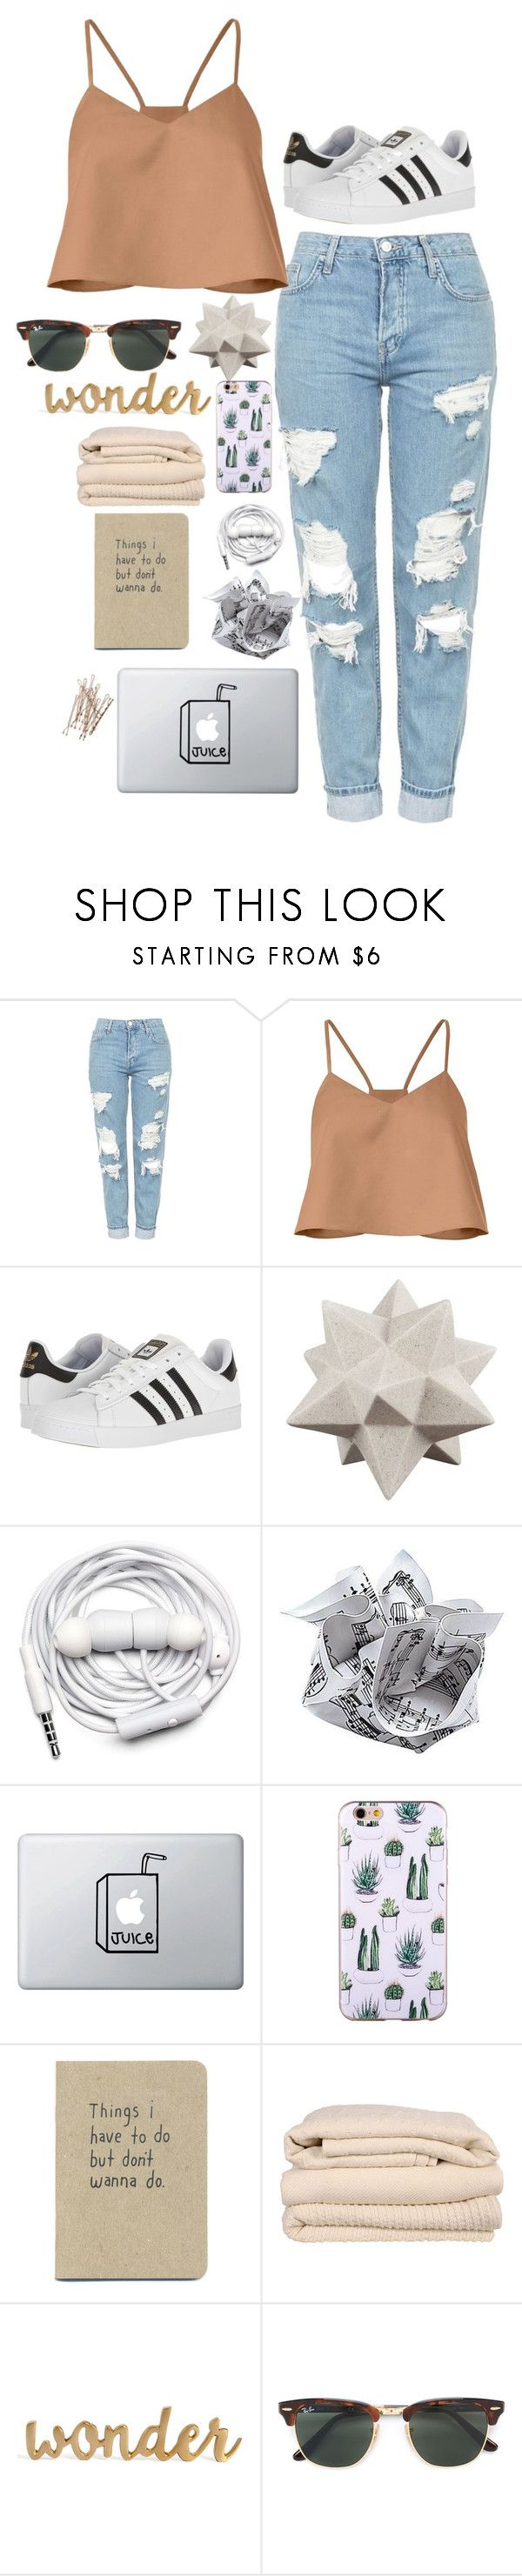 """Untitled #479"" by emmas-weird ❤ liked on Polyvore featuring Topshop, TIBI, adidas, Moe's, Urbanears, Brahms Mount and Ray-Ban"